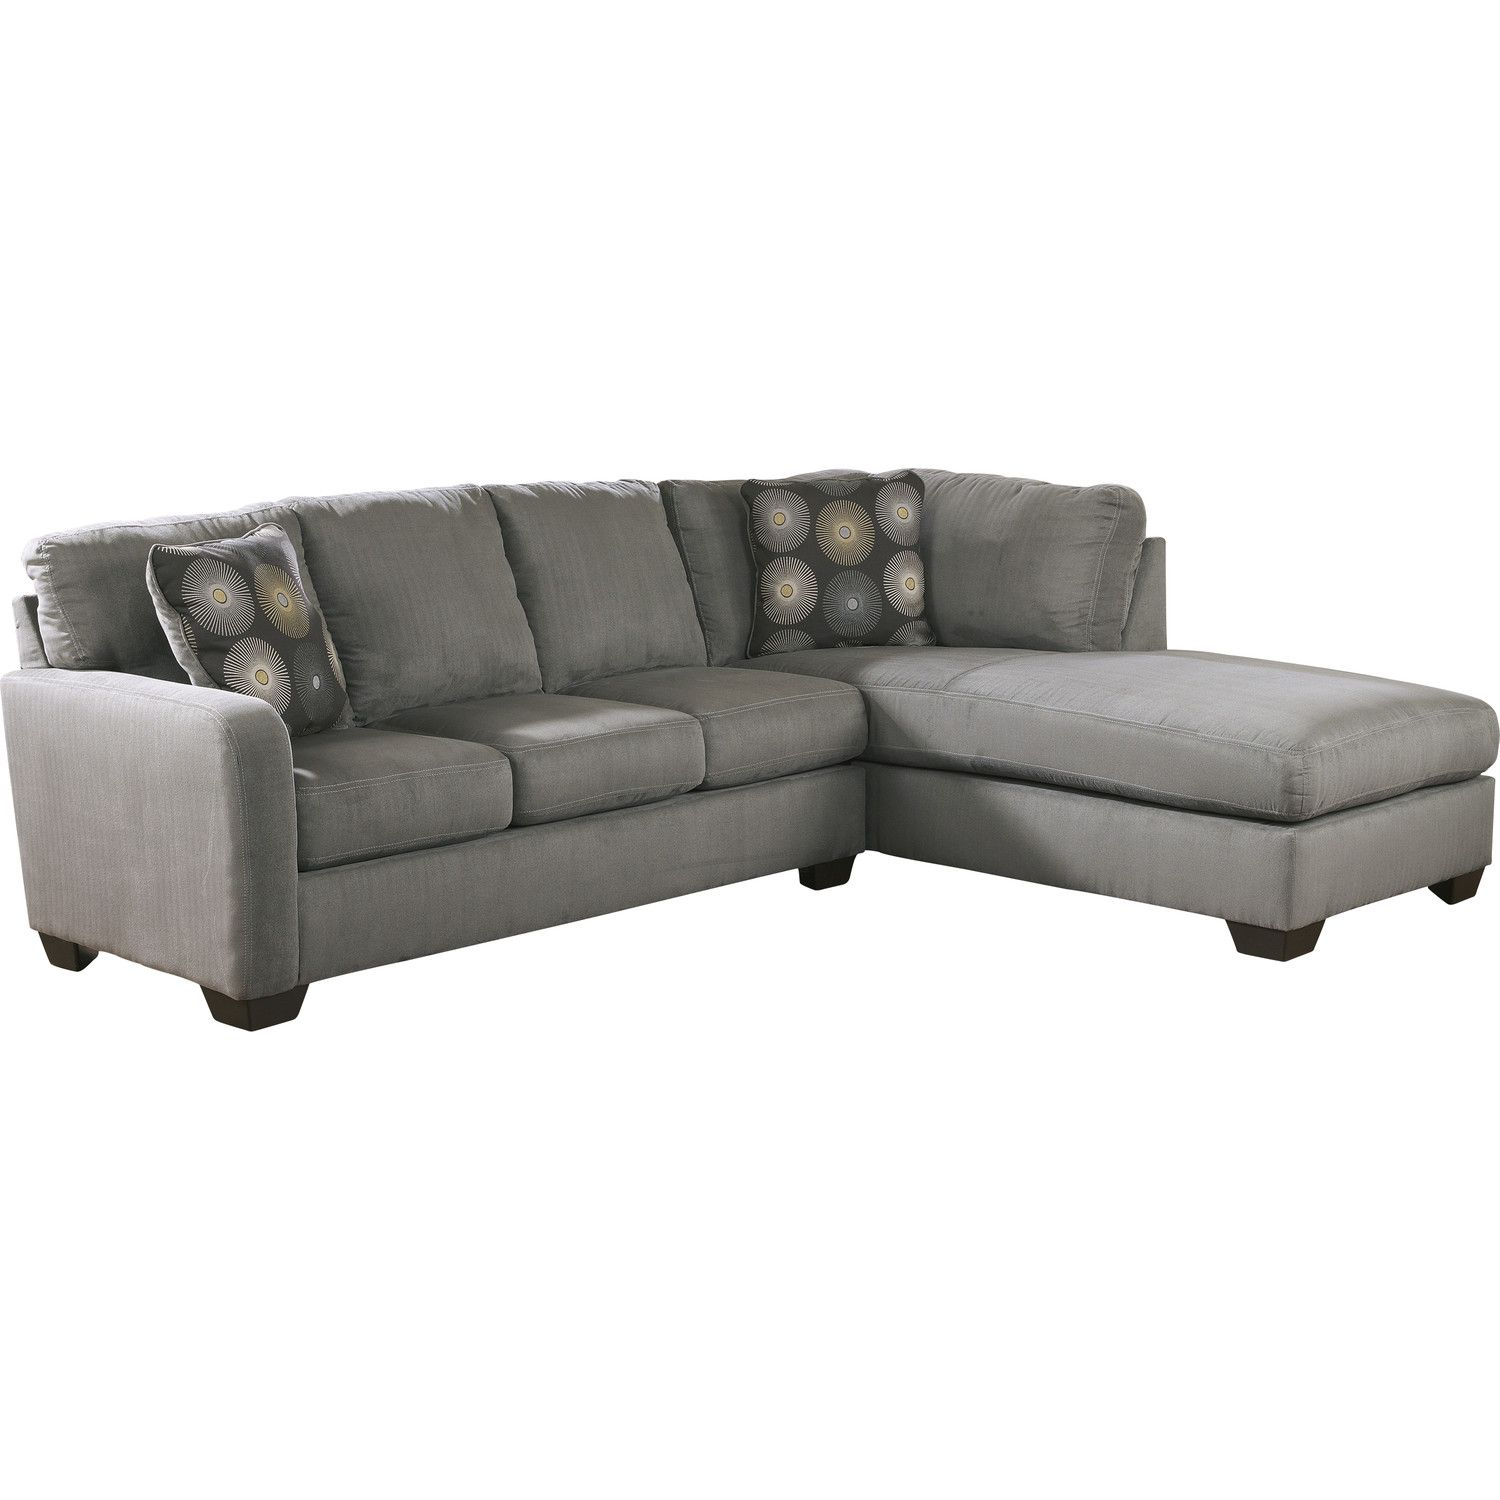 Signature Design By Ashley Sofa Reviews | Review Home Co